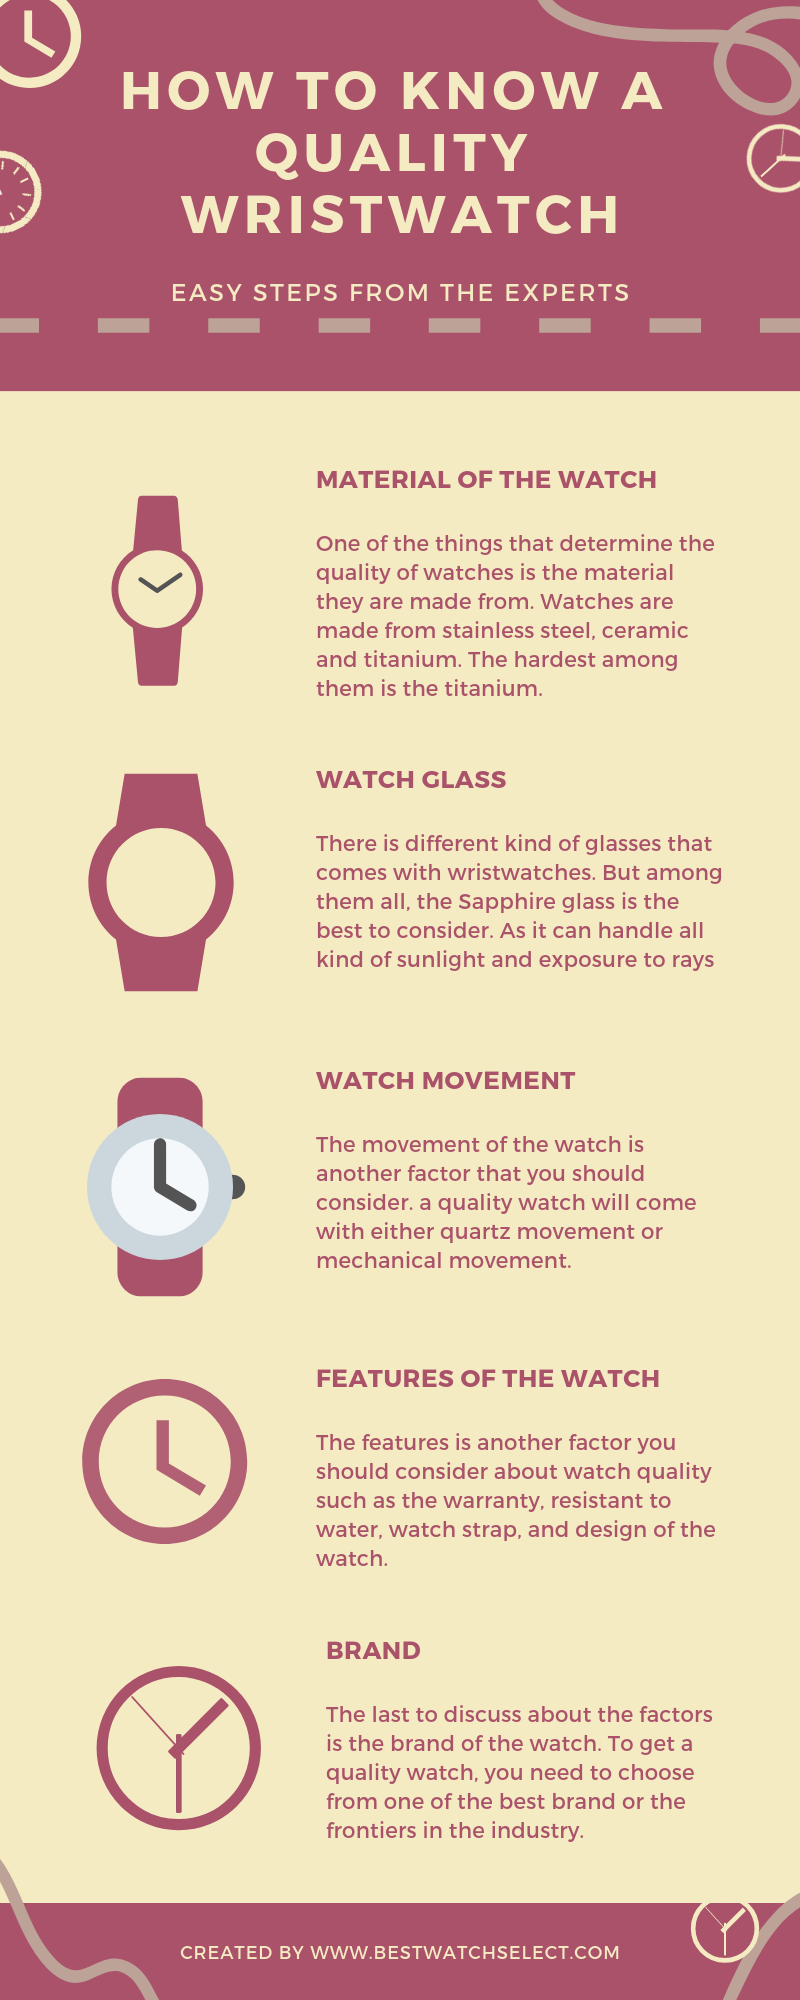 How to know a quality wristwatch-infographic-plaza